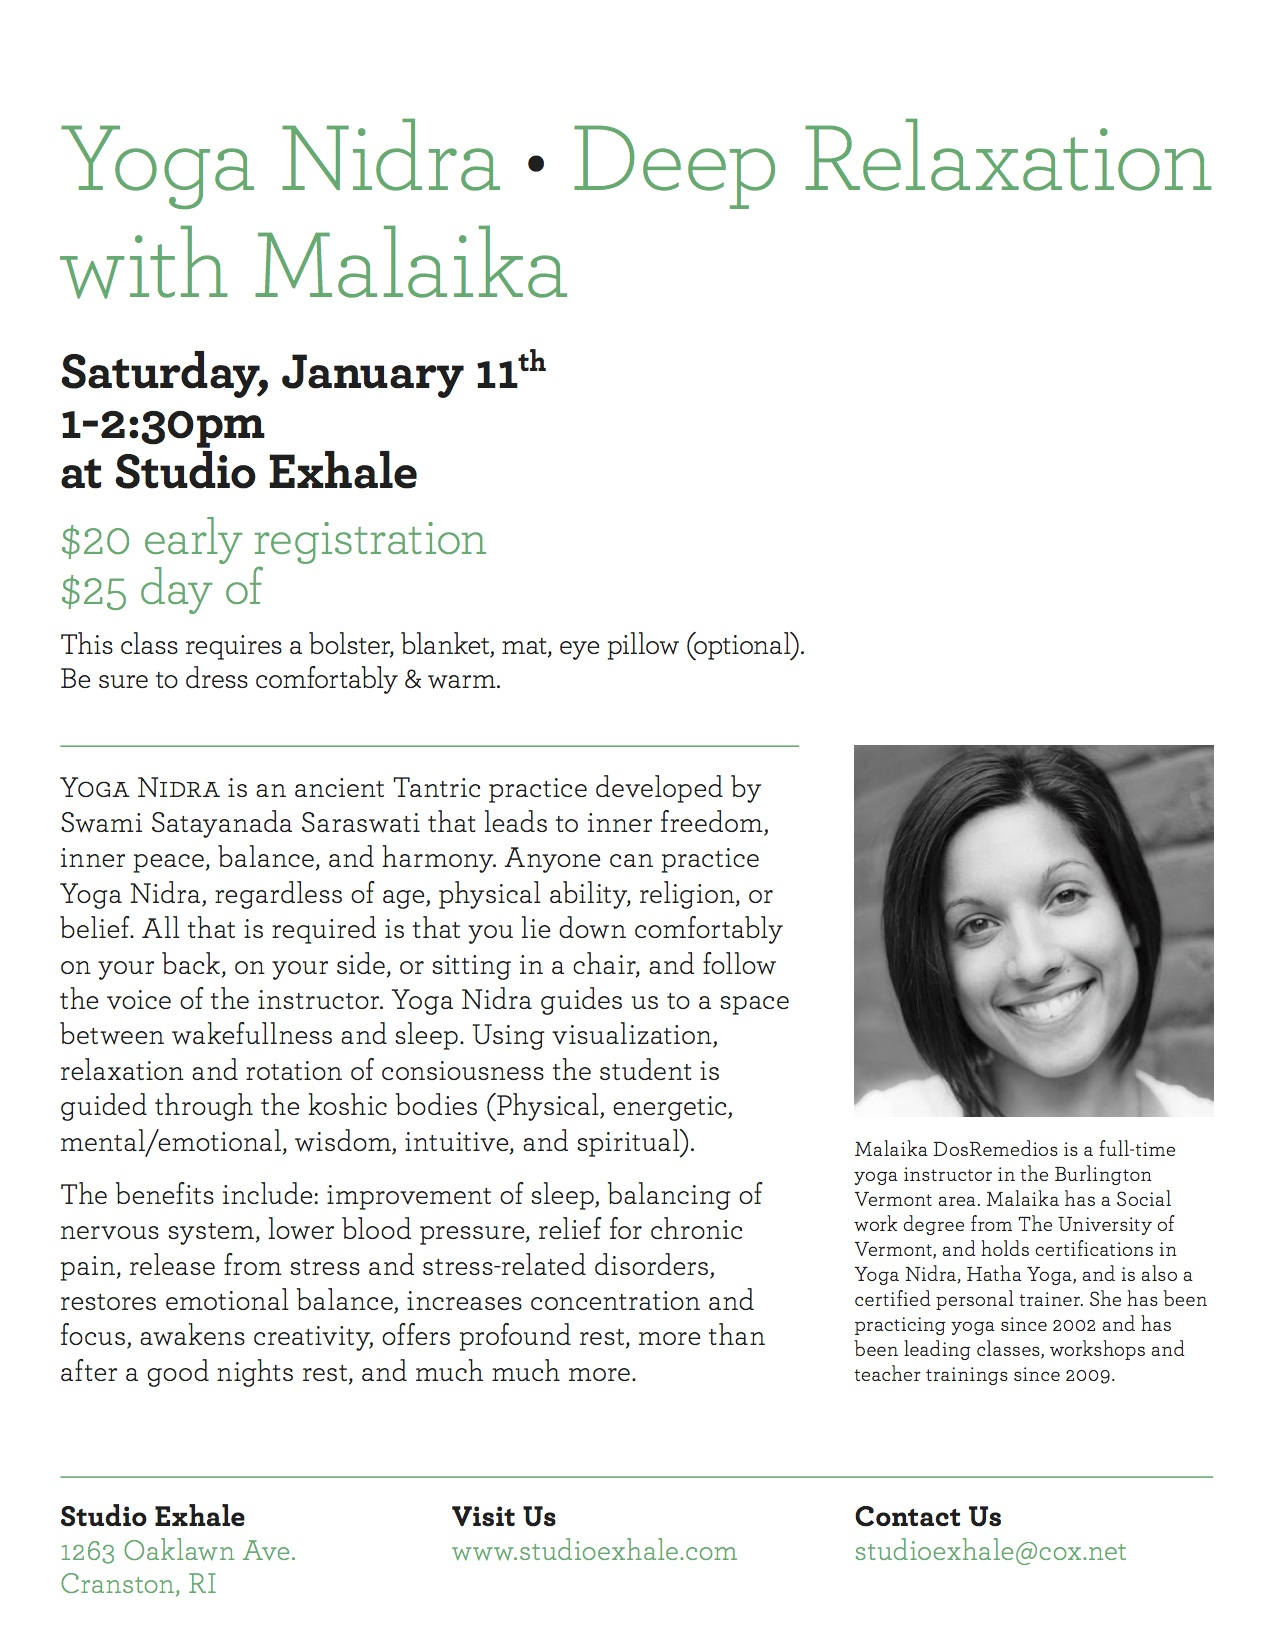 malaika_exhale_flyer_v3